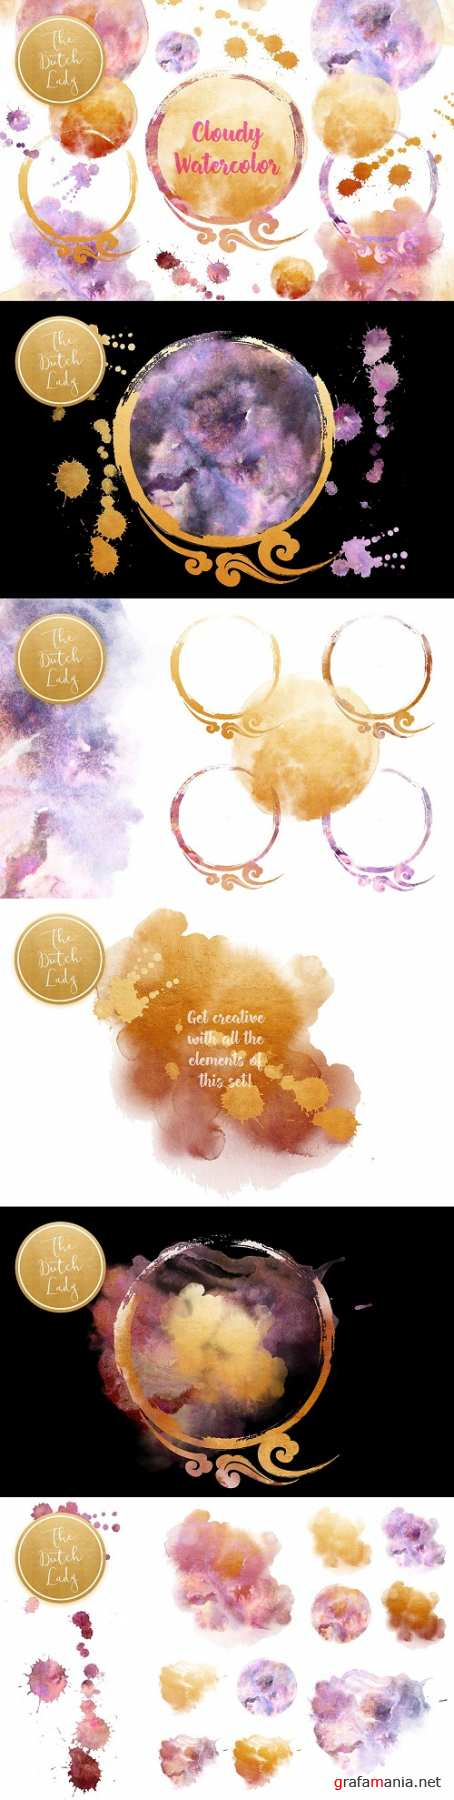 Cloudy Watercolor Ink Clipart Set - 4468059